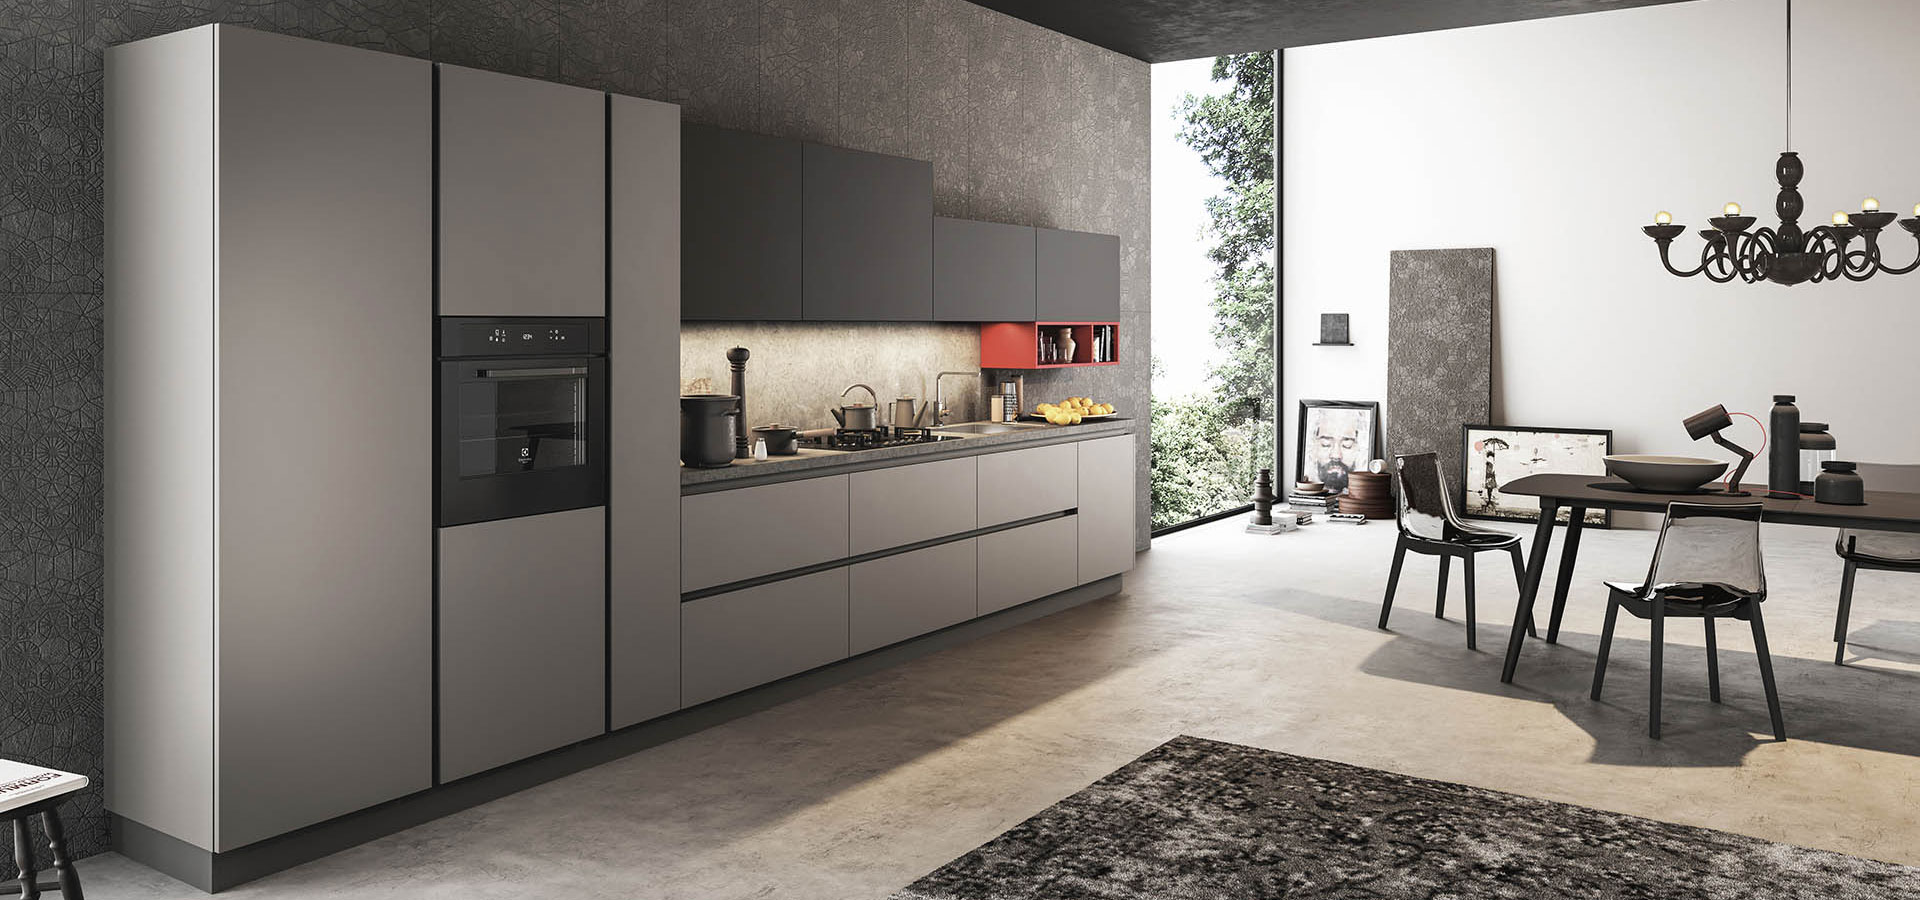 Cucina Snaidero Old America Outlet Cucine Lombardia Awesome Scontata Uac With Outlet Cucine